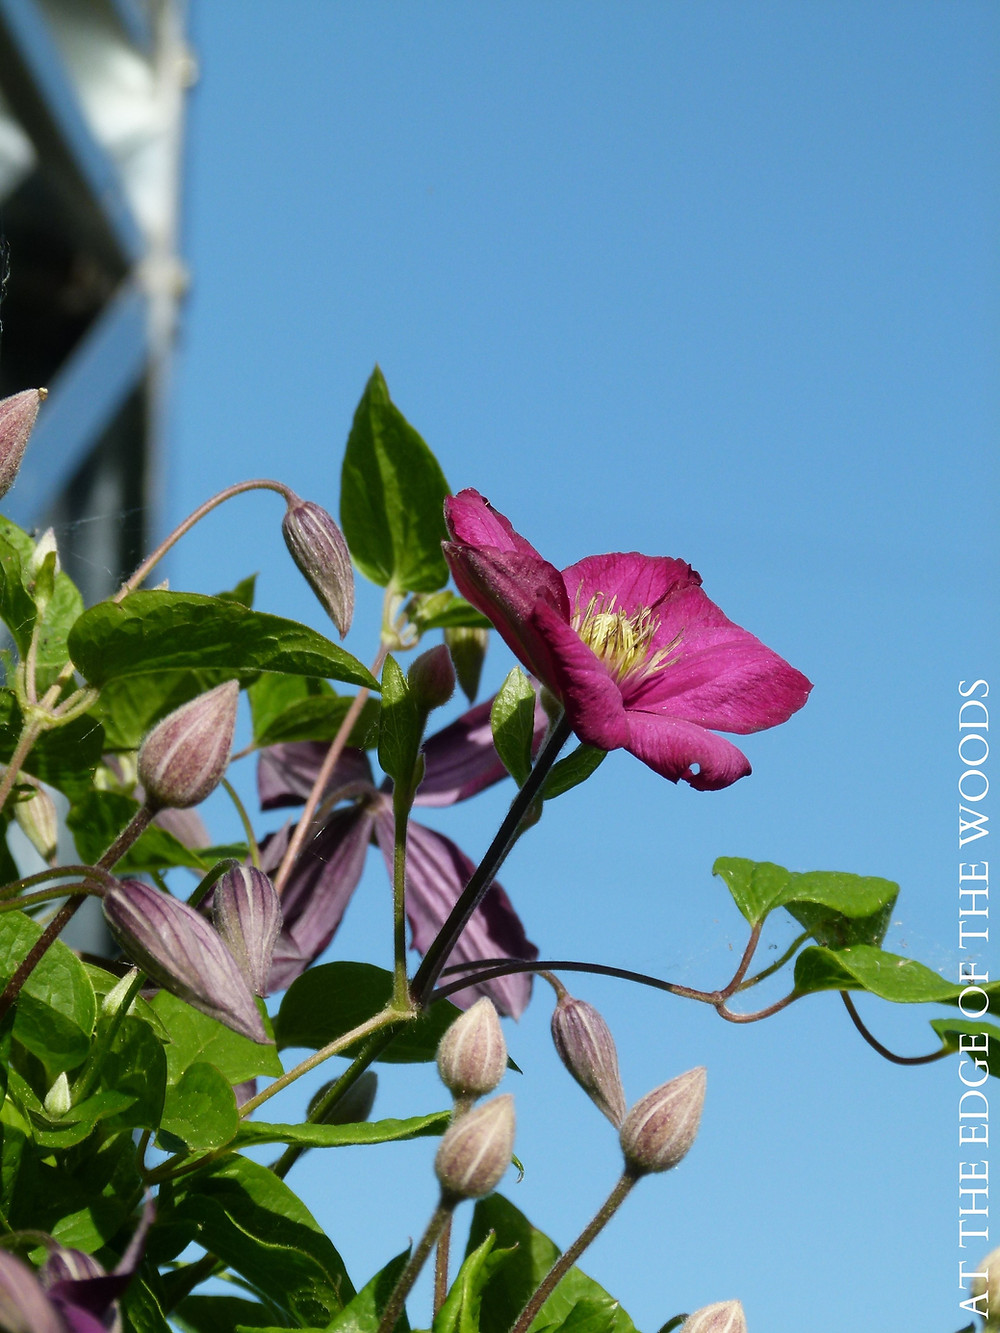 Clematis blooming on the windmill